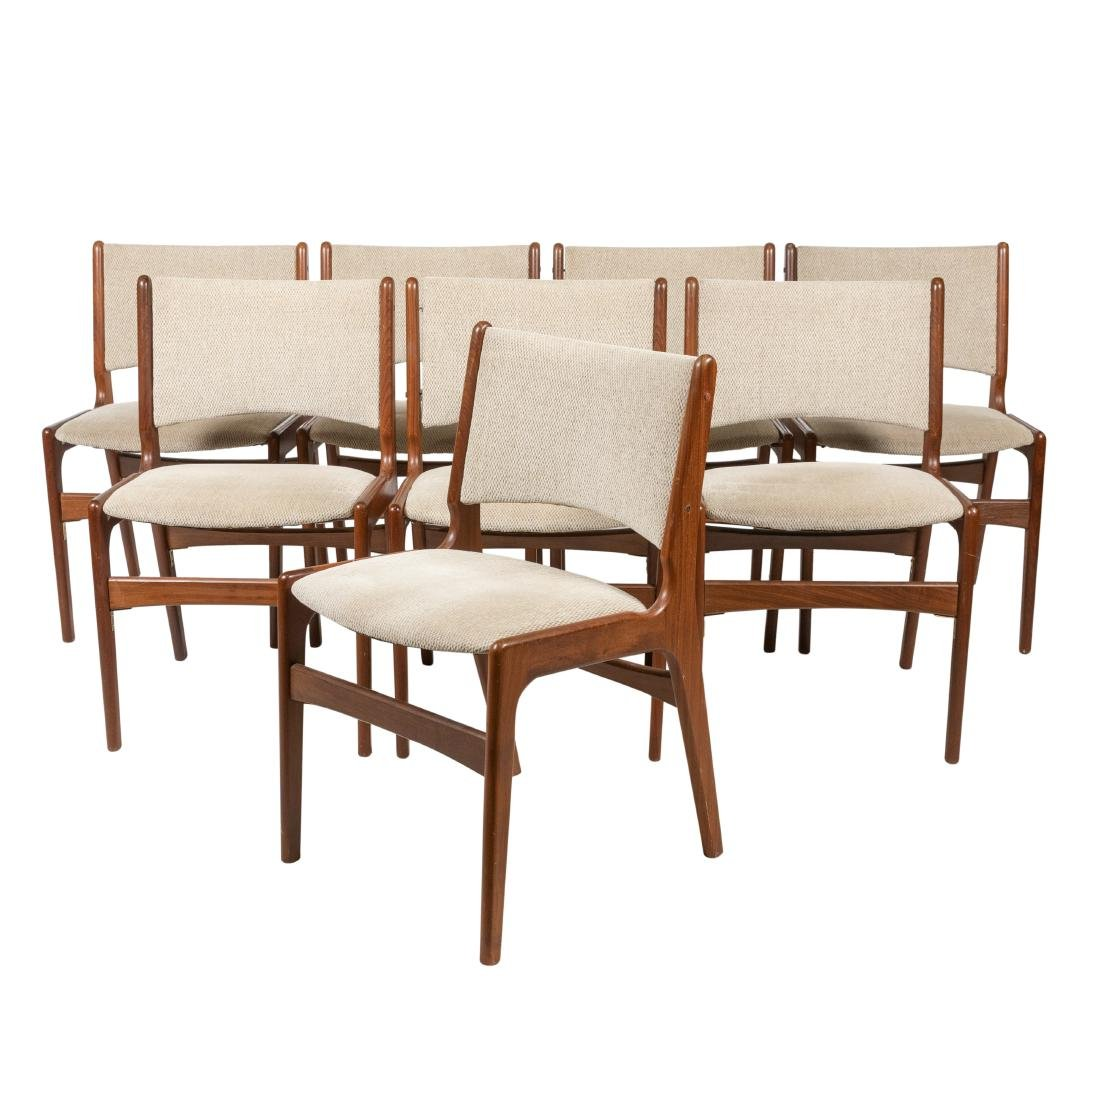 Falster - Teak Dining Chairs - Eight